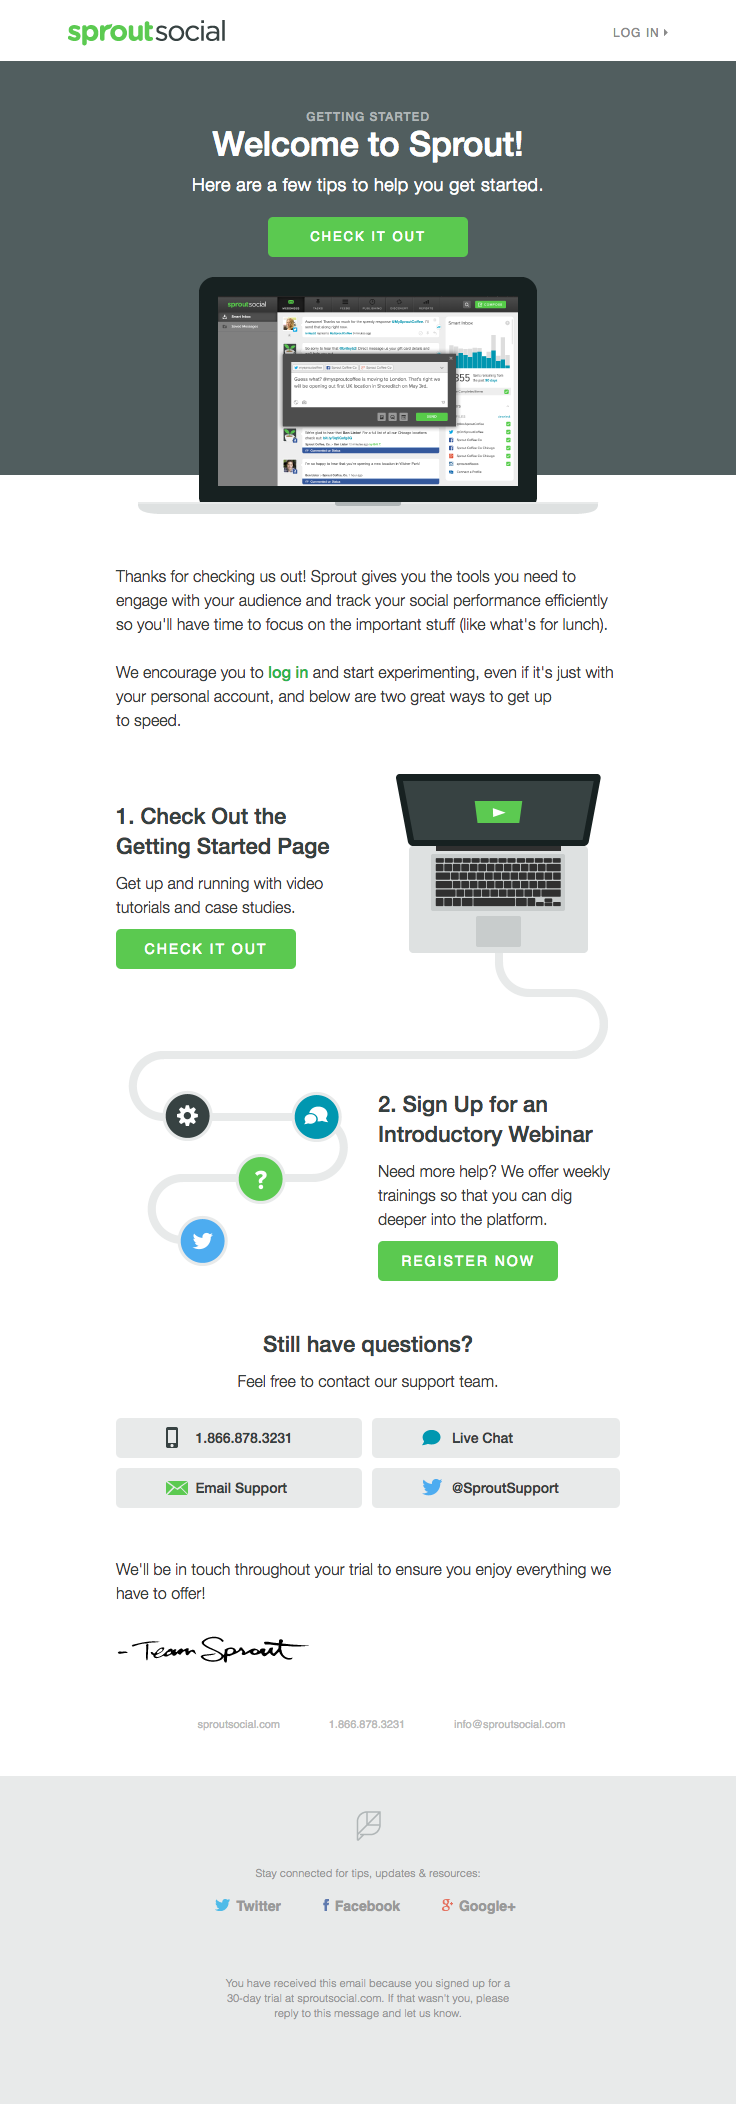 Sproutsocial Sent This Email With The Subject Line Welcome To